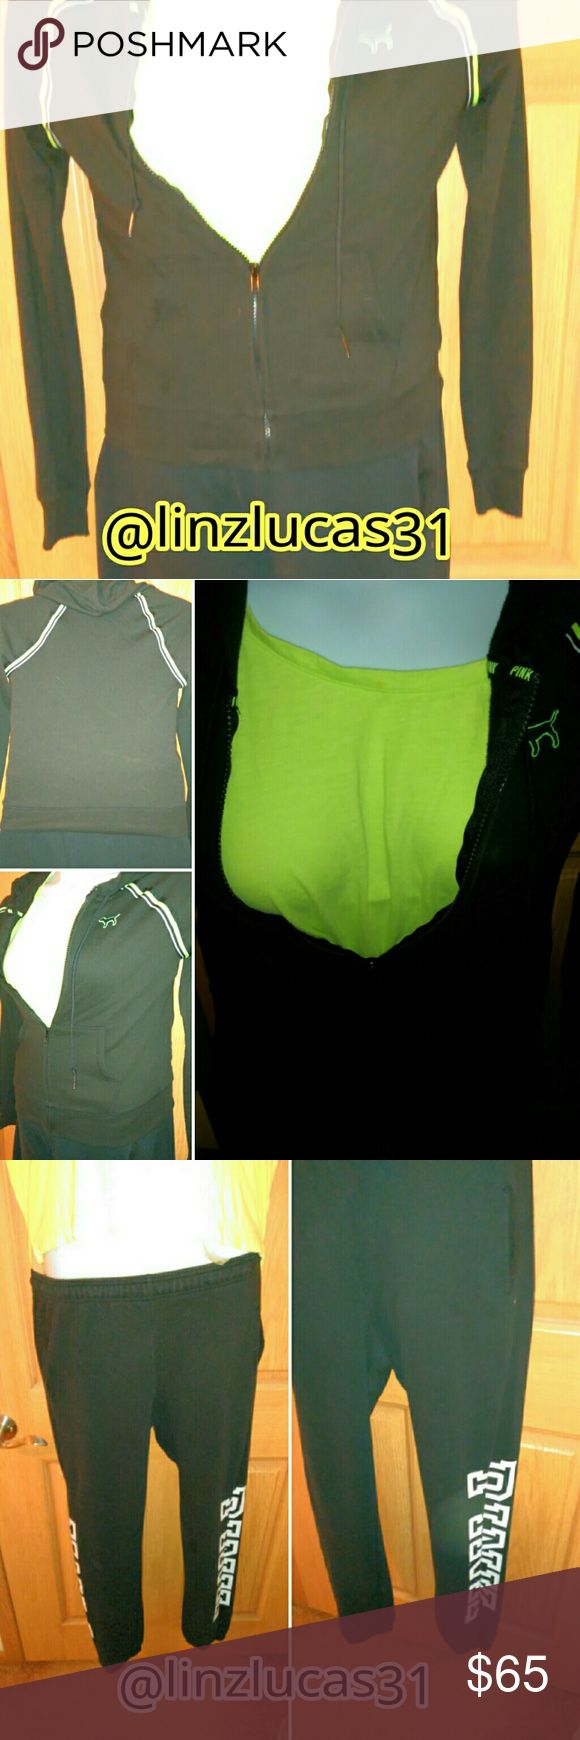 VSPINK szXS 3pc hoodie,open back tee&campus pants VSPINK szXS black and green full zip hoodie NWT, szXS open back tank top, and szXS black and white Campus pants, worn once, Very cute set PINK Victoria's Secret Other